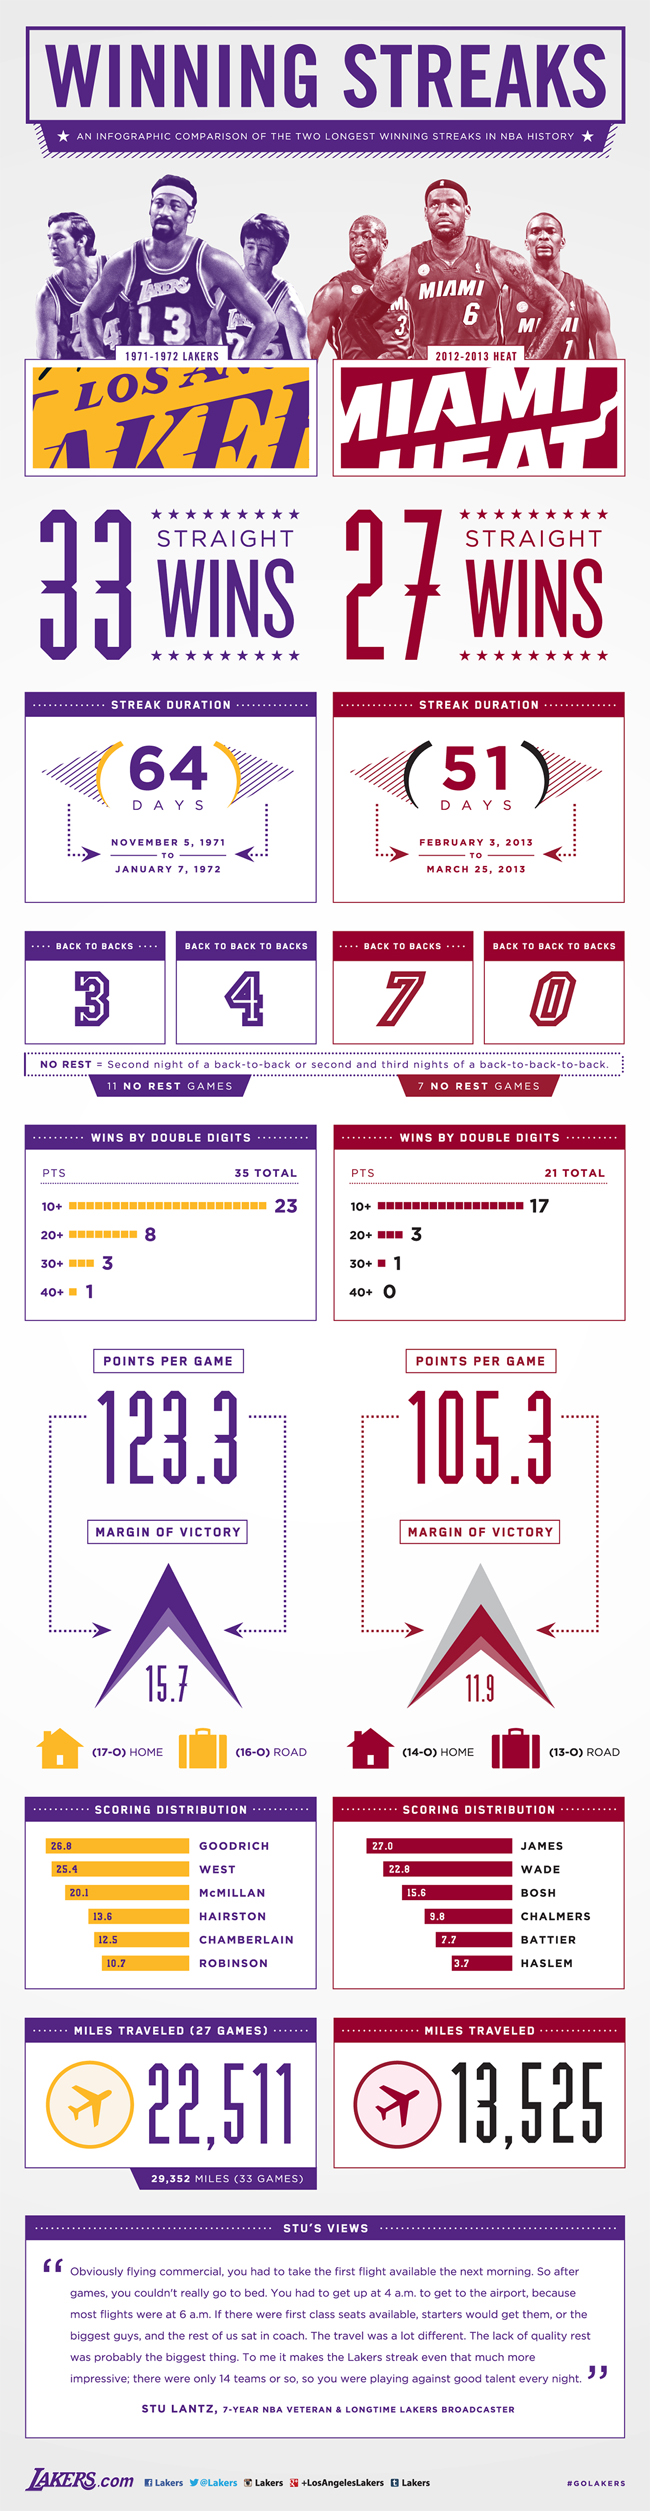 Lakers.com compares the winning streaks of the Lakers and the Heat   http://www.nba.com/lakers/multimedia/130329_winningstreaks